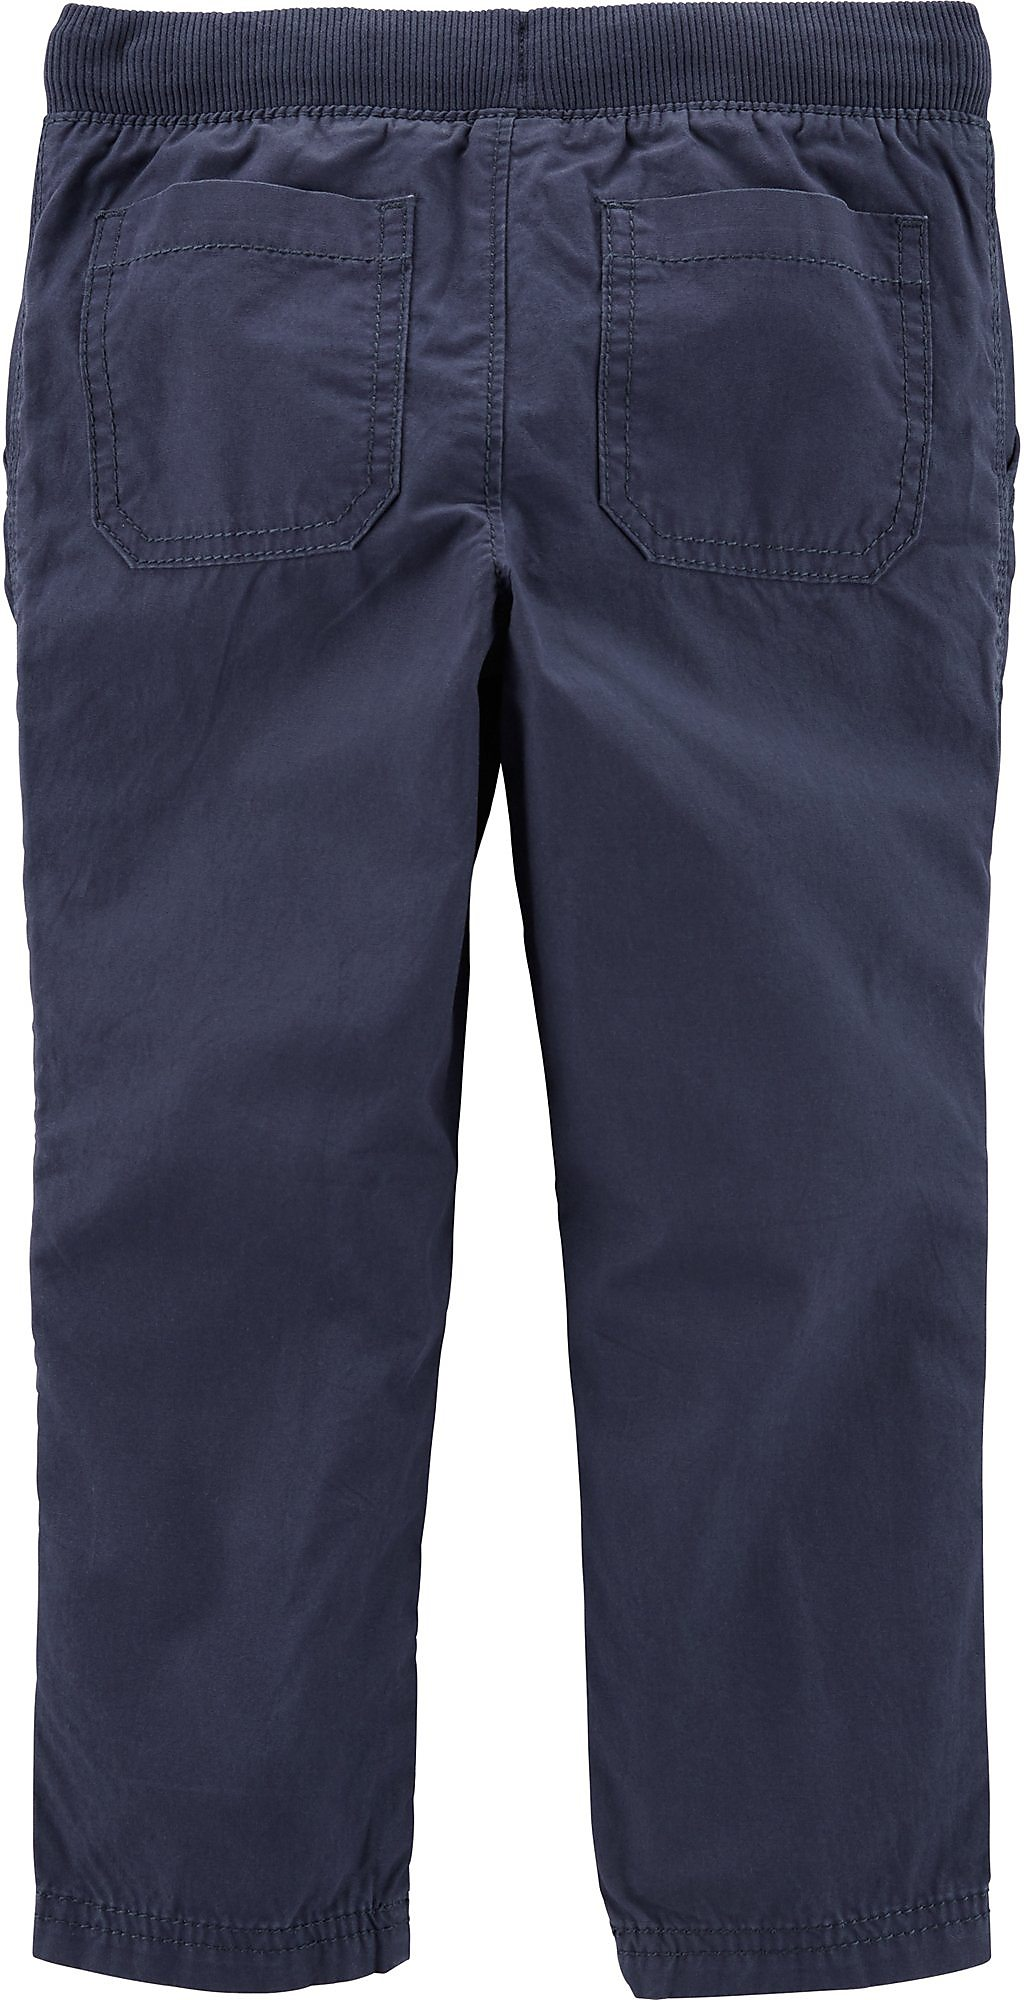 Carters Toddler Boys Solid Knit Waist Pull-On Pants